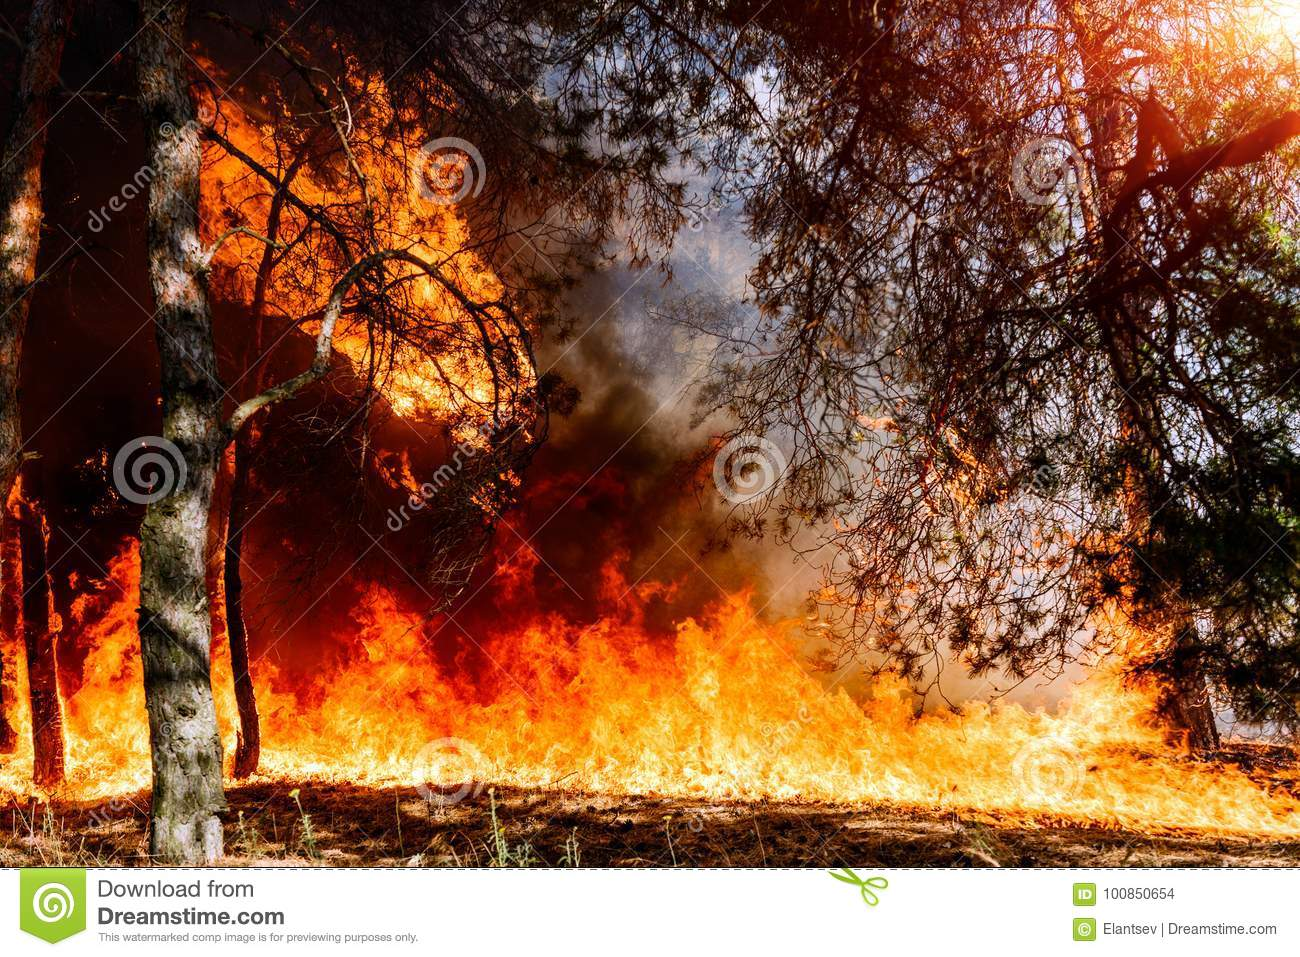 Forest fire. Appropriate to visualize wildfires or prescribed burning.